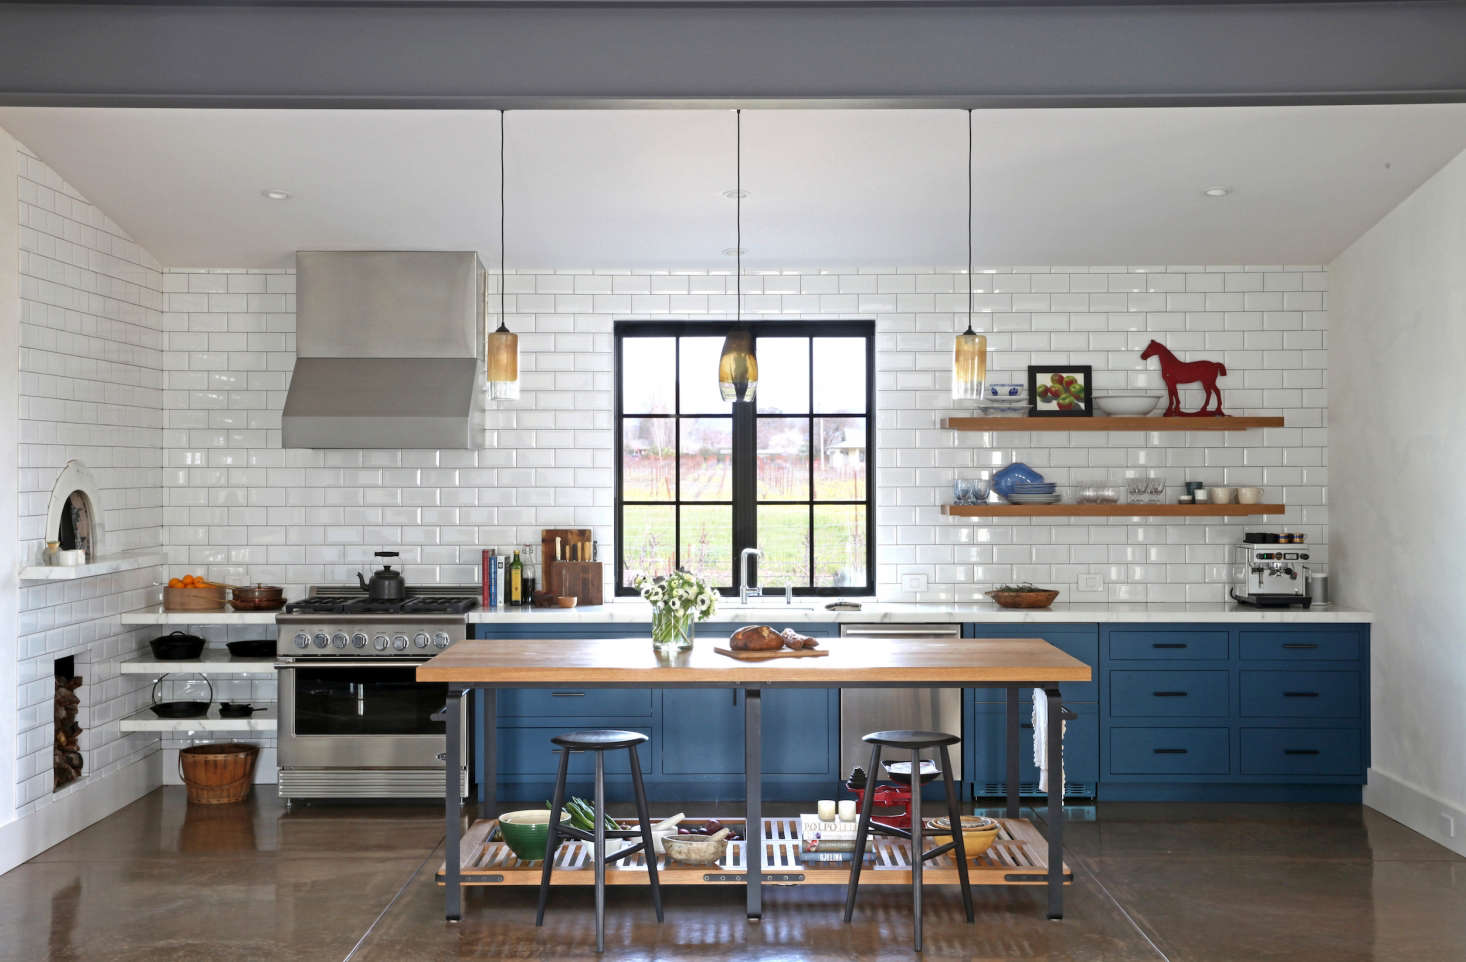 Kitchen Island With Range Remodeling 101 What To Know When Replacing Your Range Remodelista